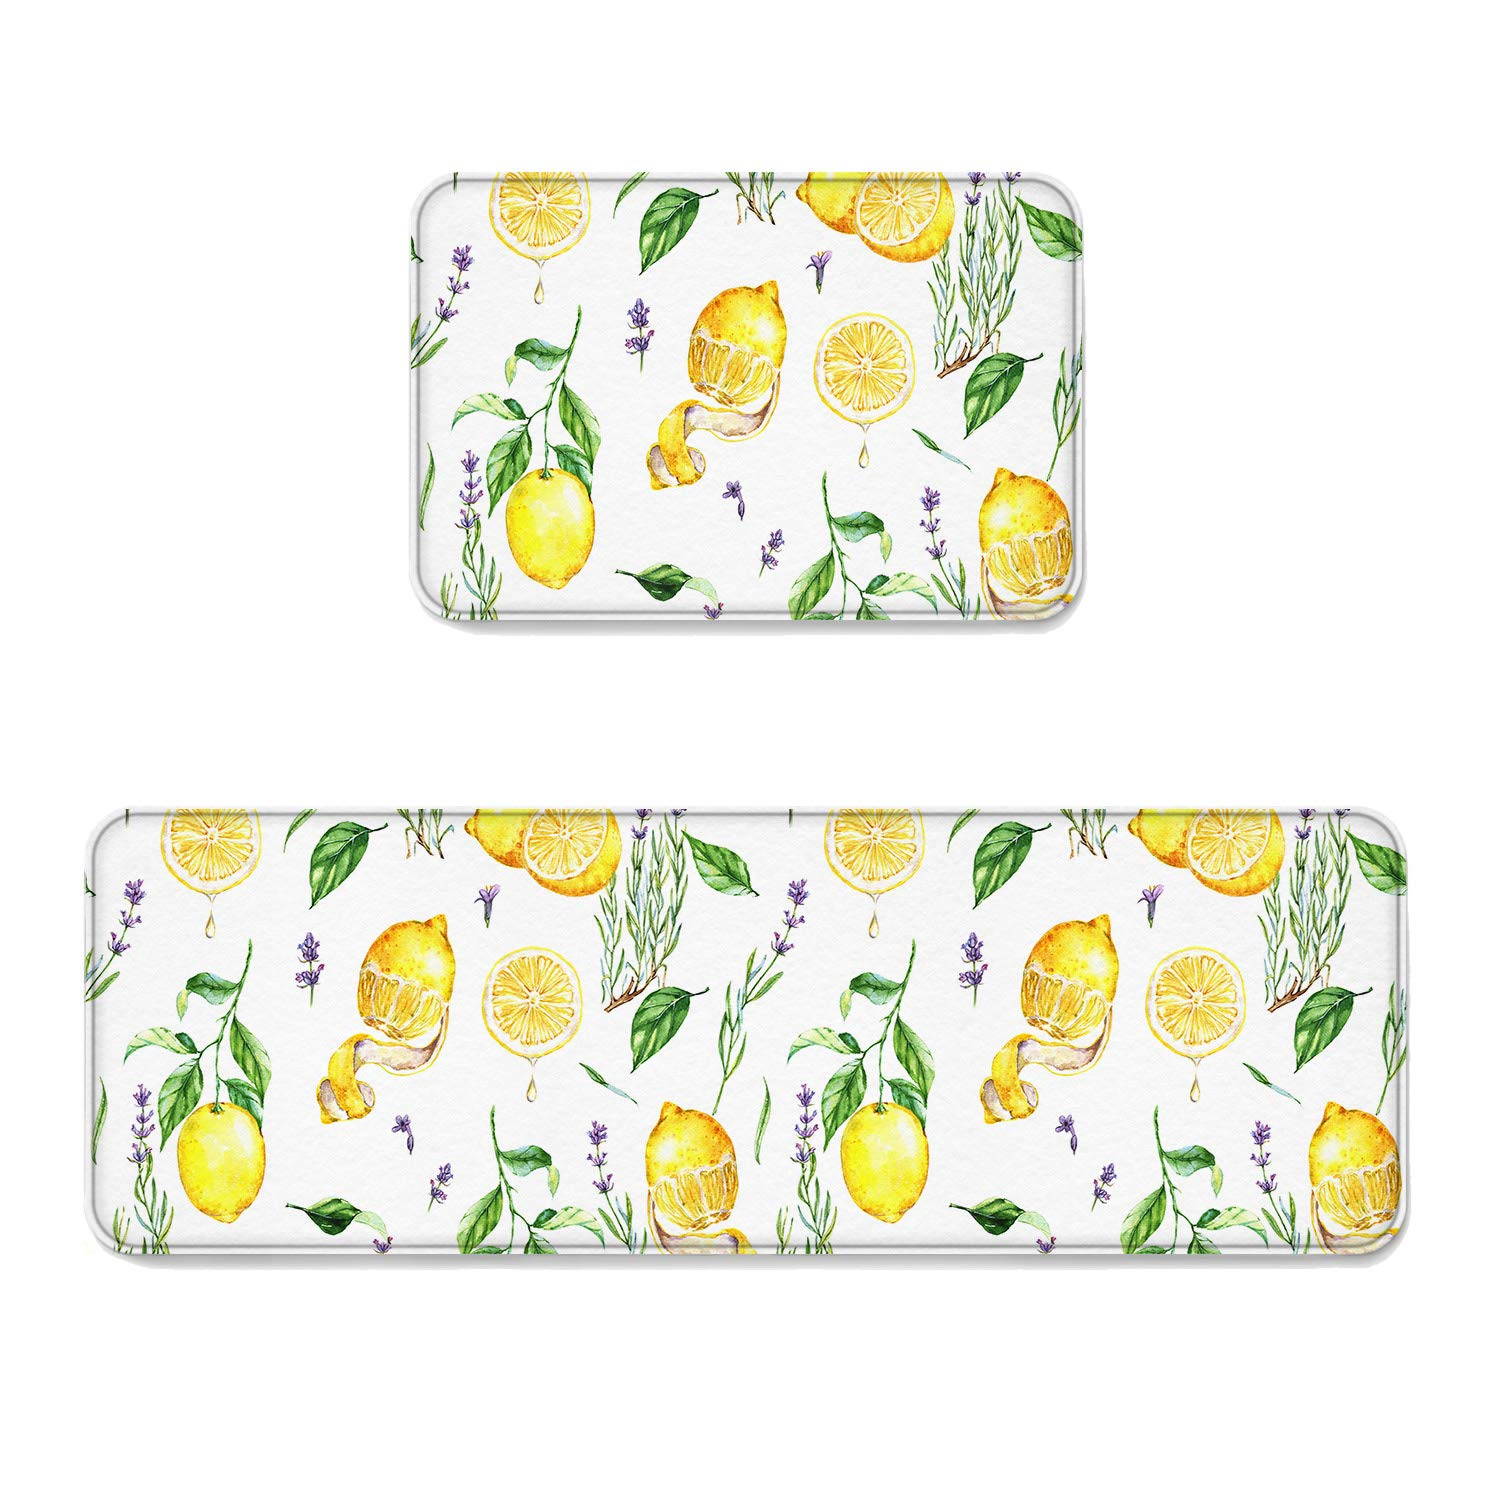 2 Piece Non-Slip Kitchen Mat Runner Exotic Lemon Tree Branches Floral